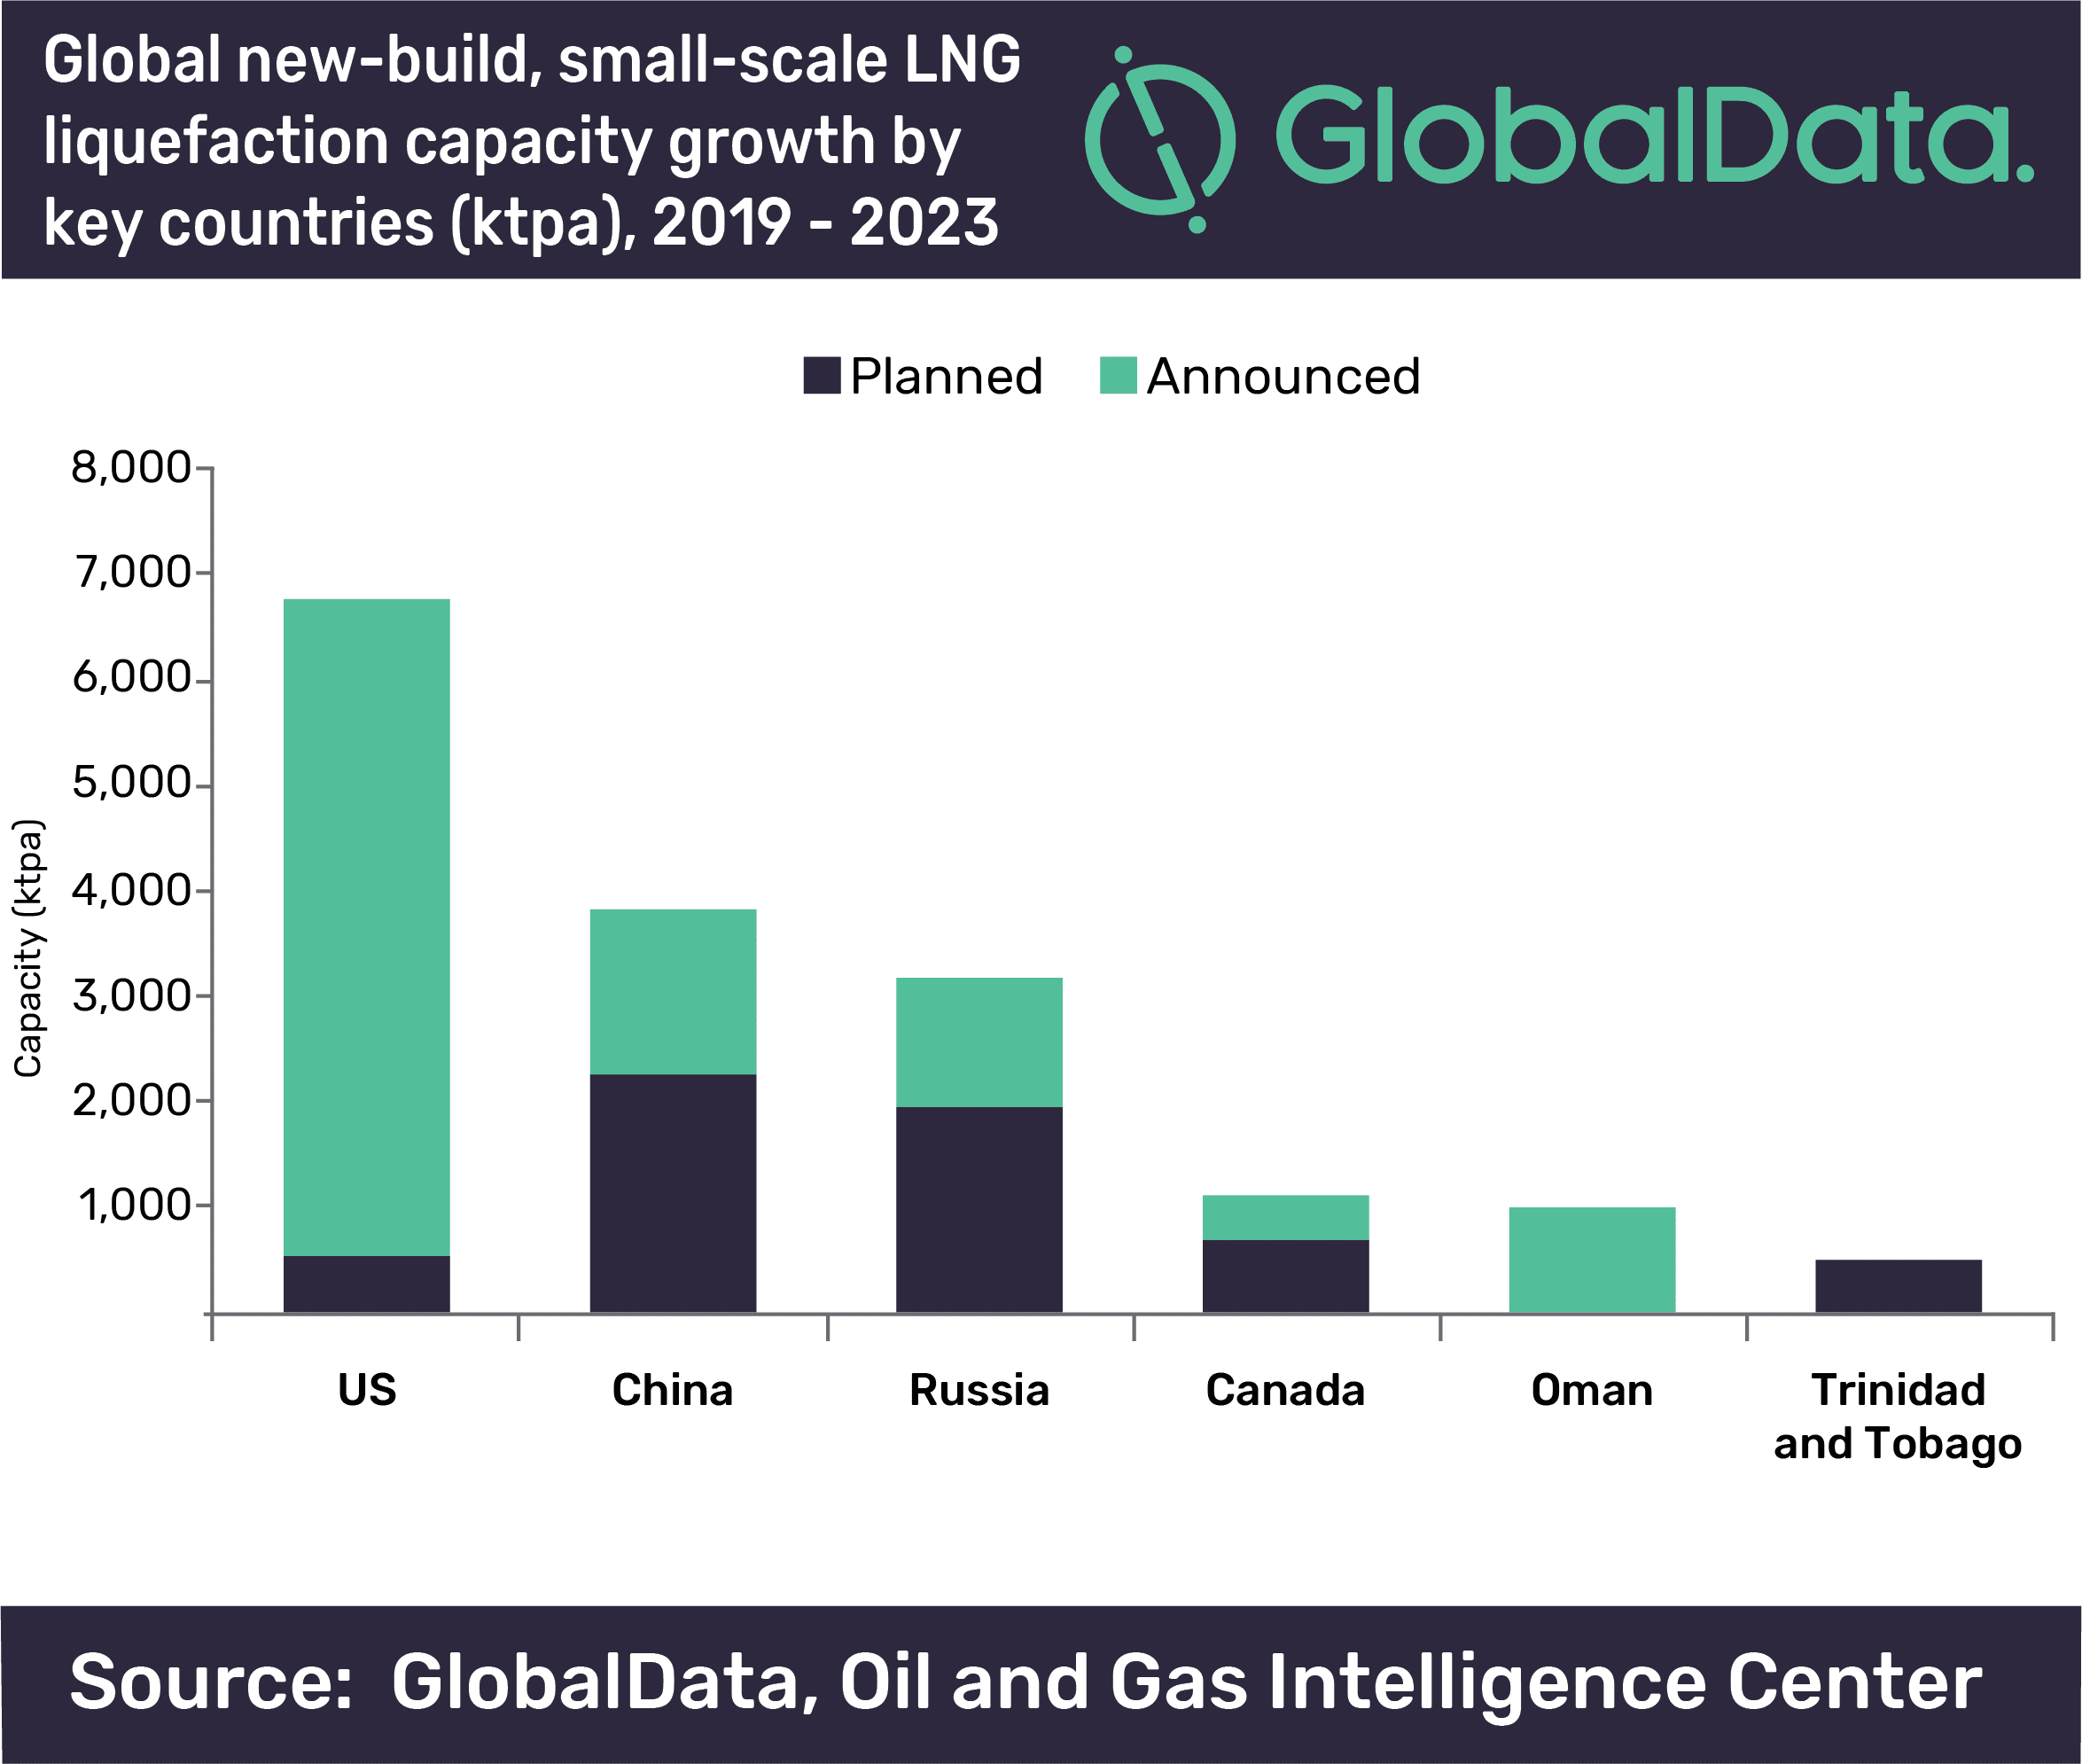 US to contribute 40% of global new-build small-scale LNG liquefaction capacity additions by 2023